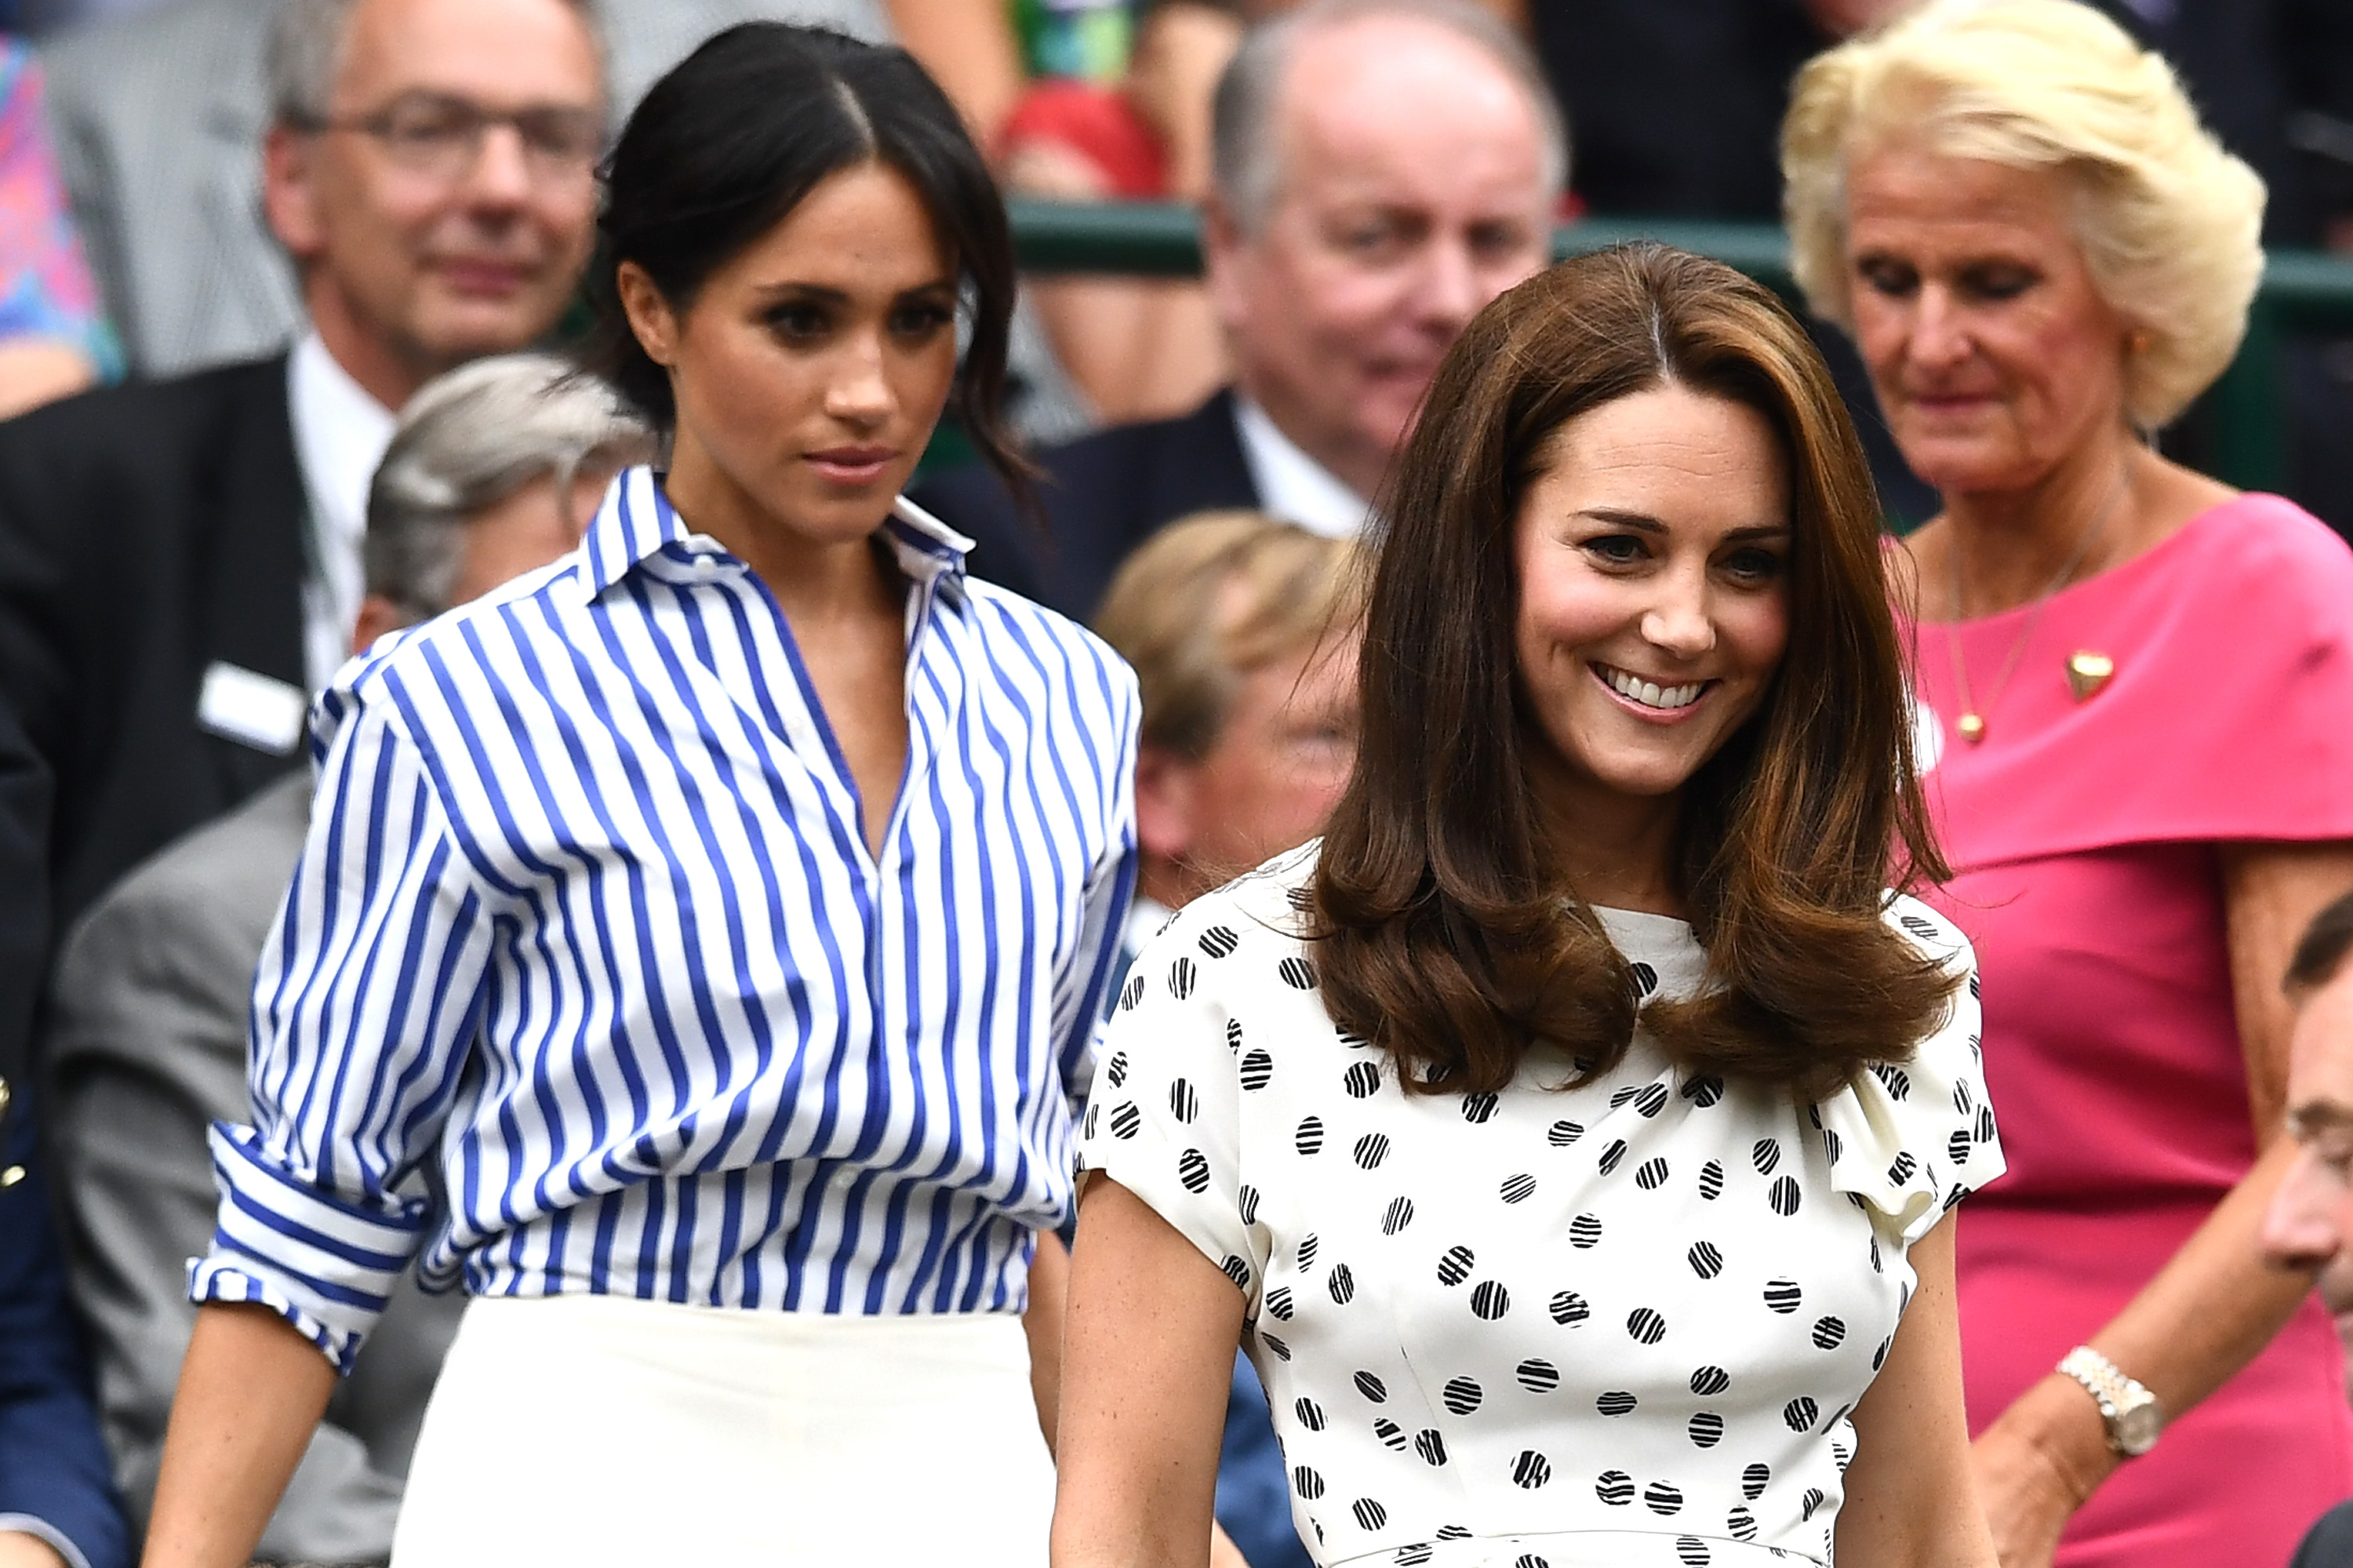 Meghan, Duchess of Sussex and Catherine, Duchess of Cambridge attend day twelve of the Wimbledon Lawn Tennis Championships at All England Lawn Tennis and Croquet Club on July 14, 2018 in London, England. (Photo by Clive Mason/Getty Images)